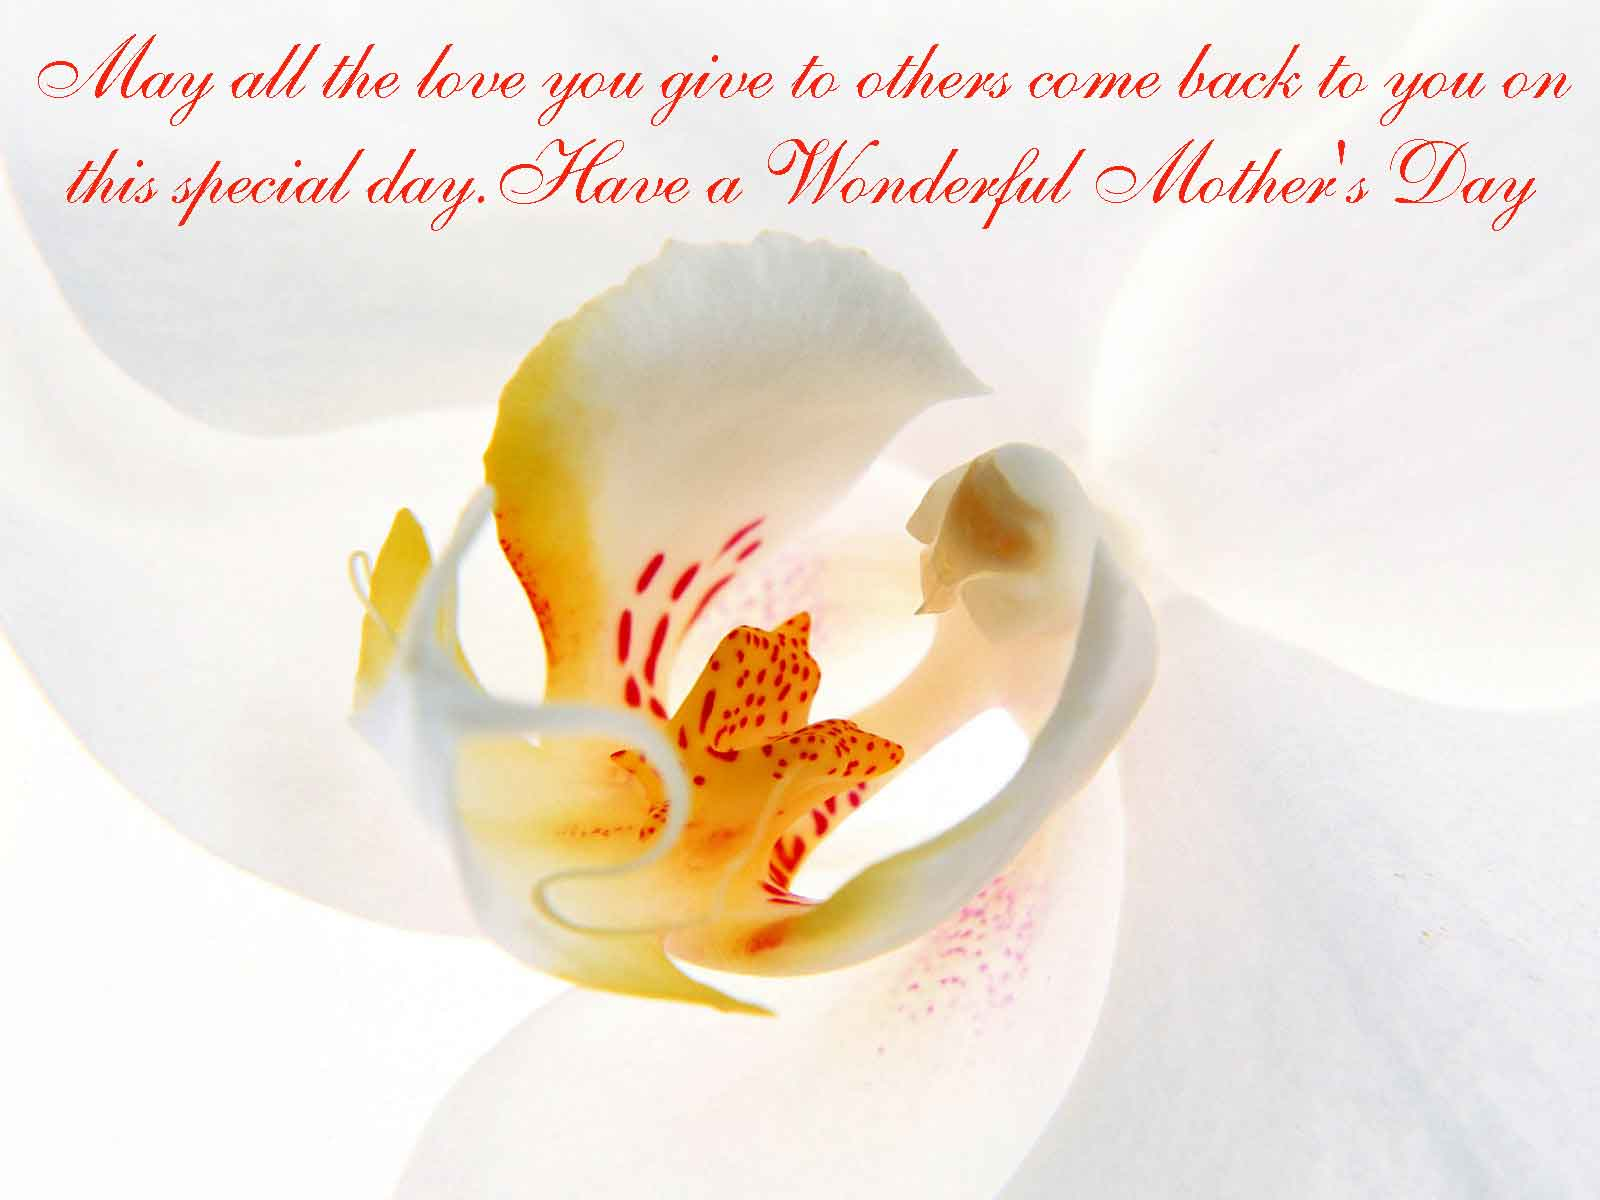 Happy Mothers Day Wishes Wallpapers Desktop Background Wallpapers